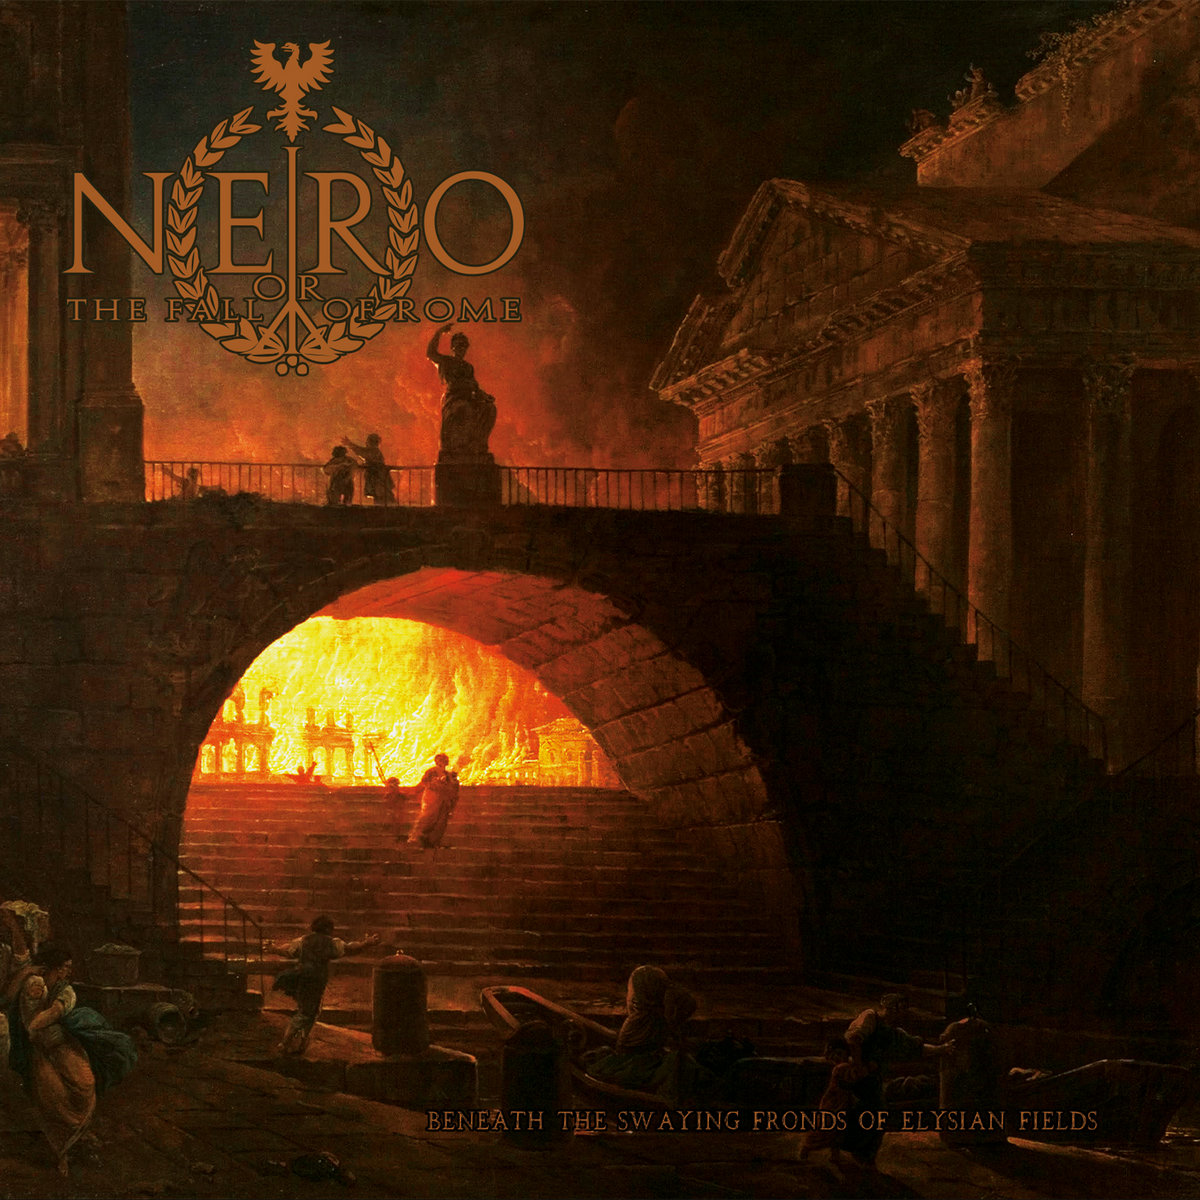 Beneath the Swaying Fronds of Elysian Fields Nero or the Fall of Rome cover art